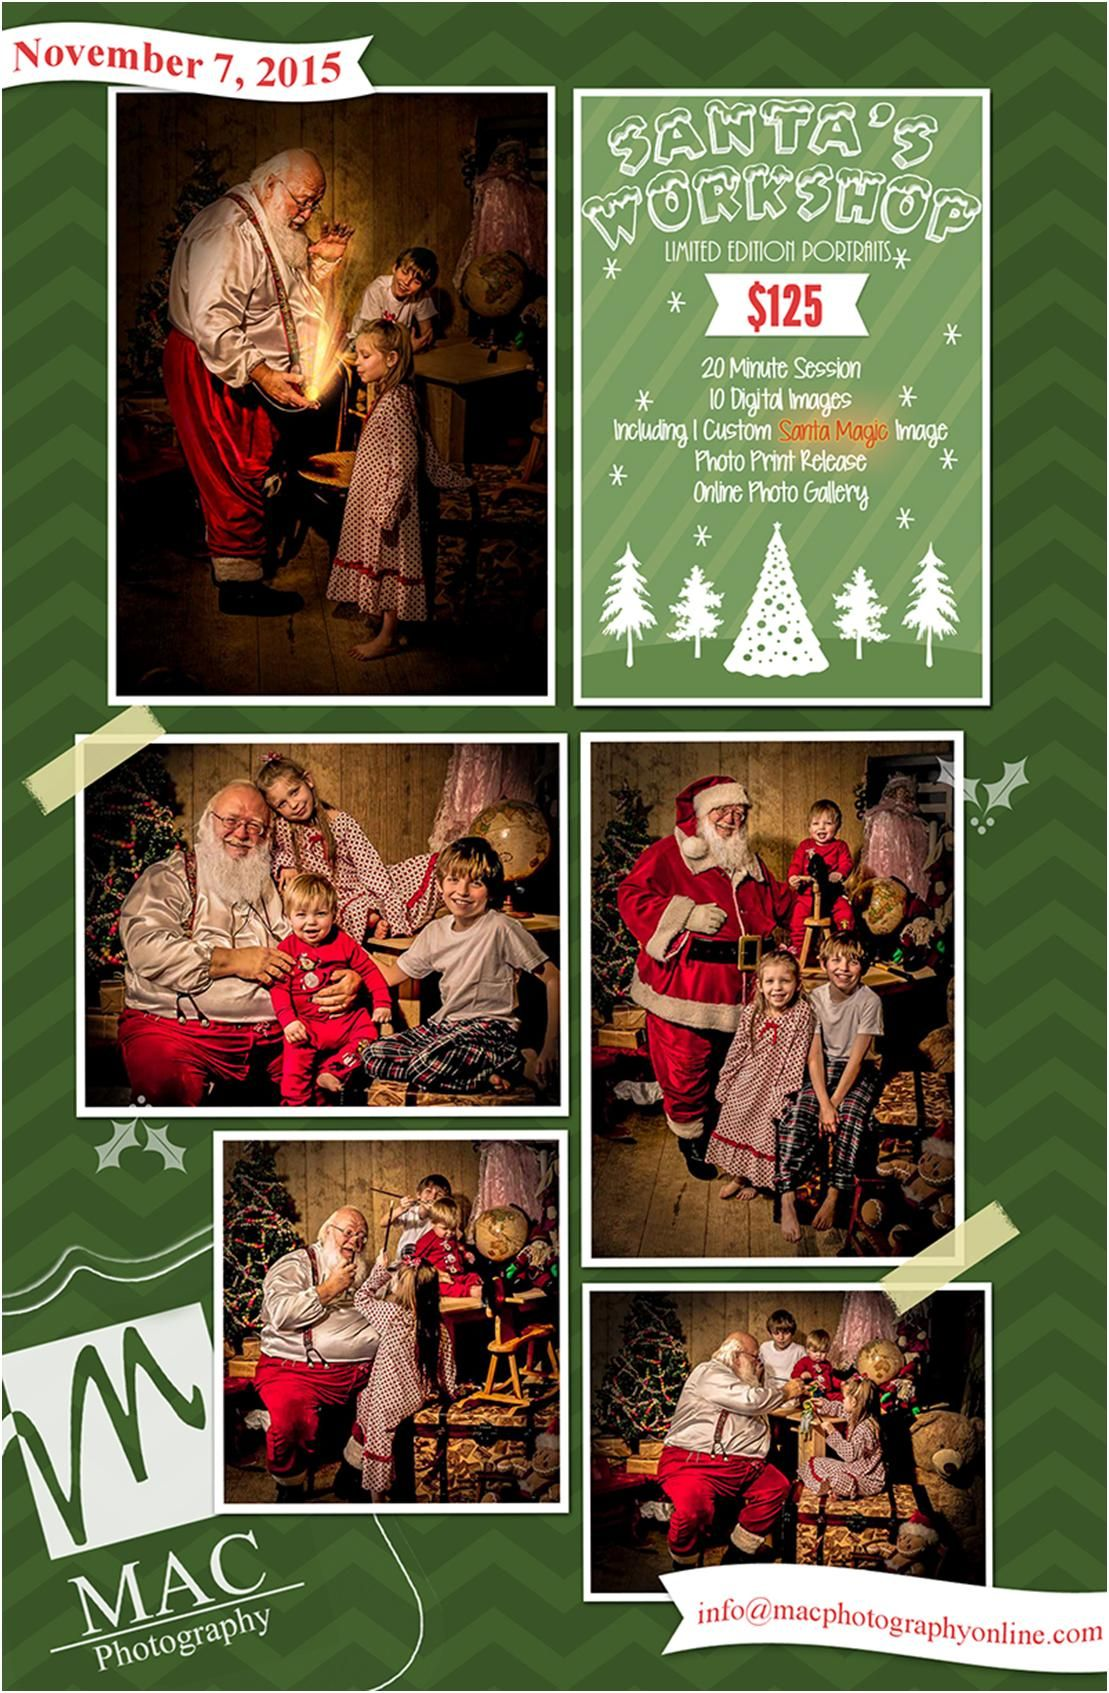 Come Visit Santa in his Workshop! One Day Only 11/7/2015 « MAC Photography